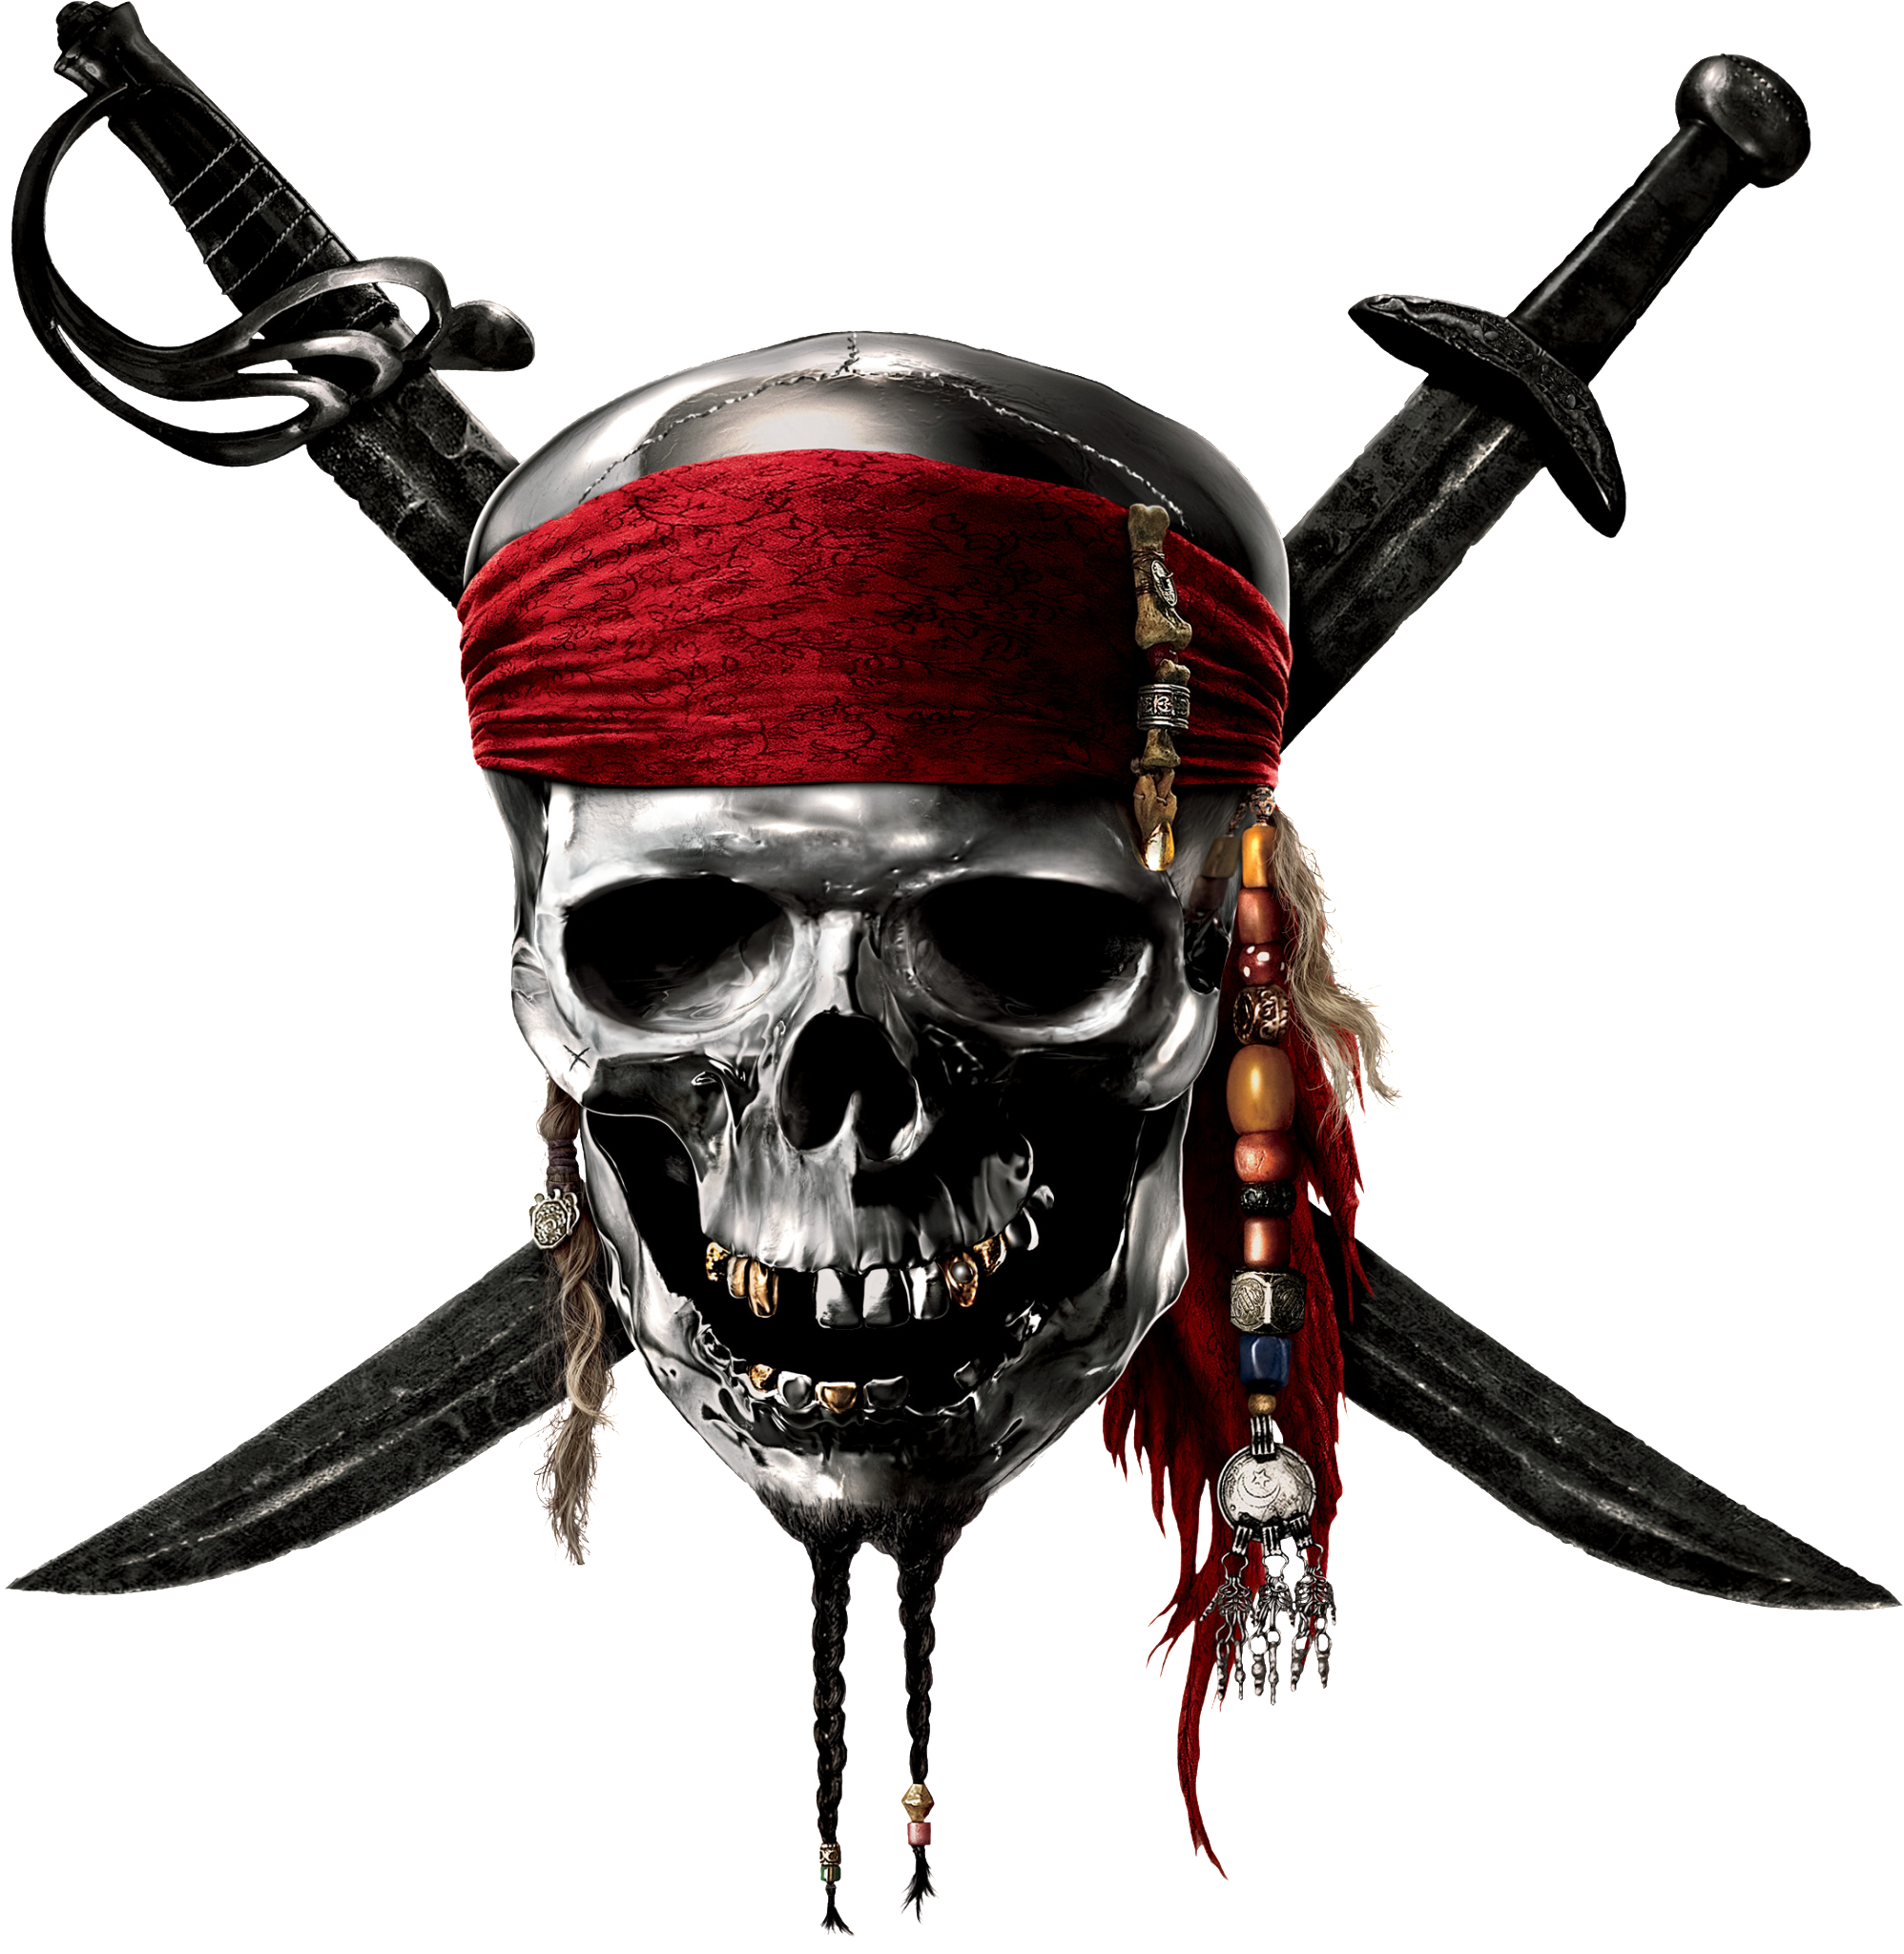 Caribbean Pirates Skull Lego Of Sparrow Game PNG Image